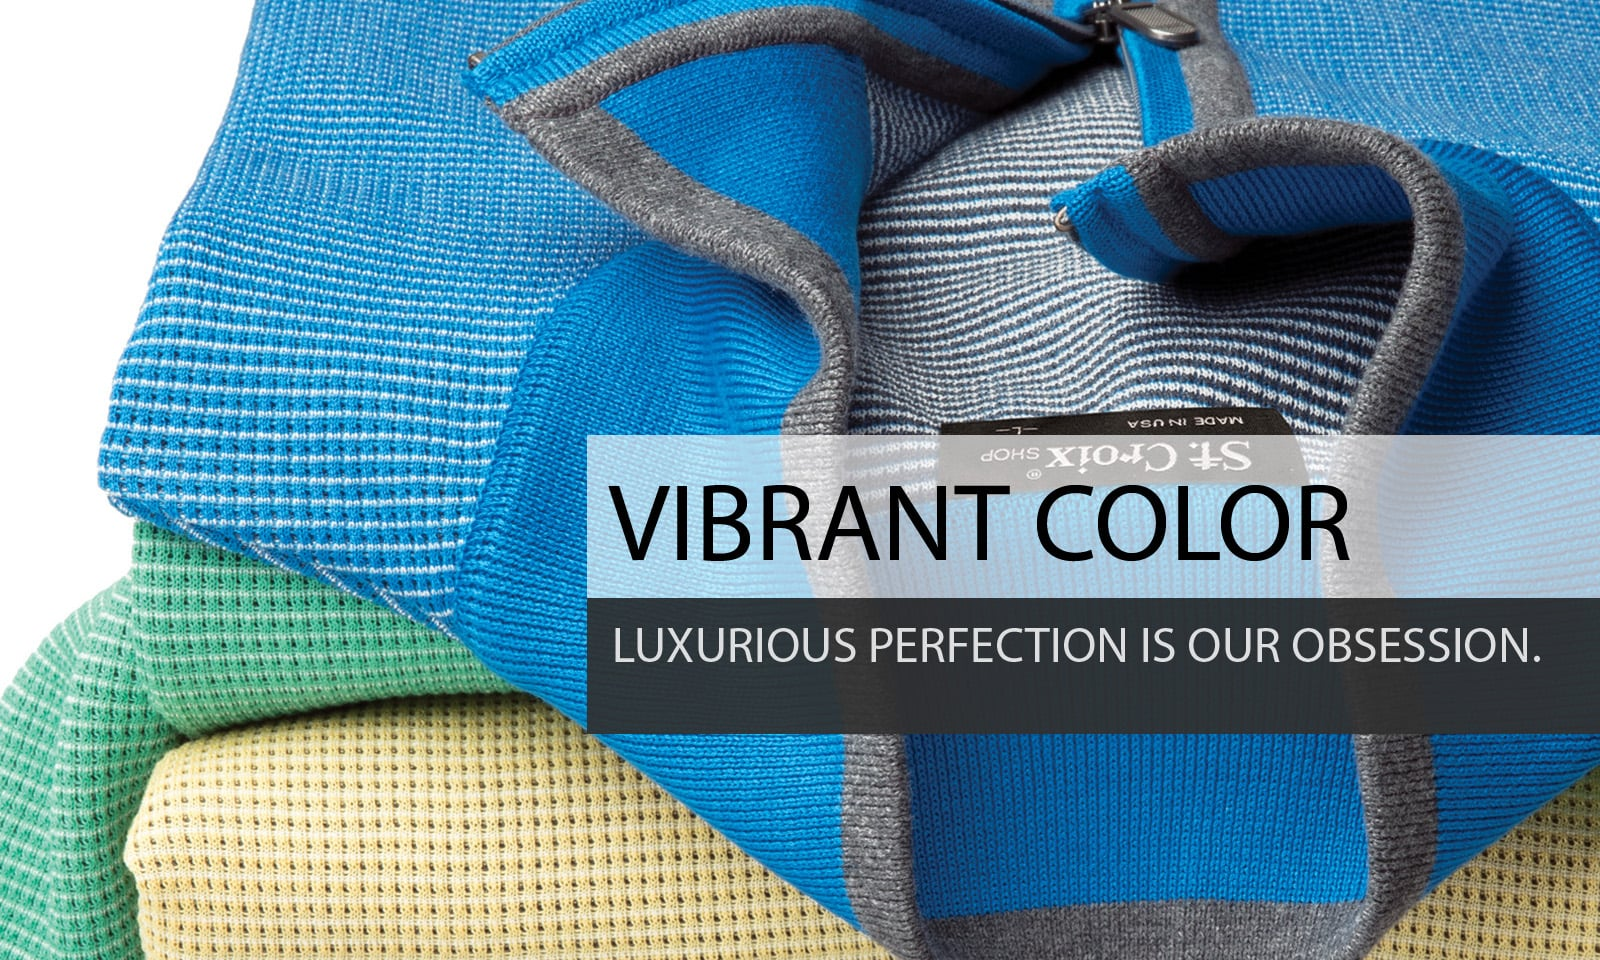 Vibrant Color - Luxurious perfection is our obsession.